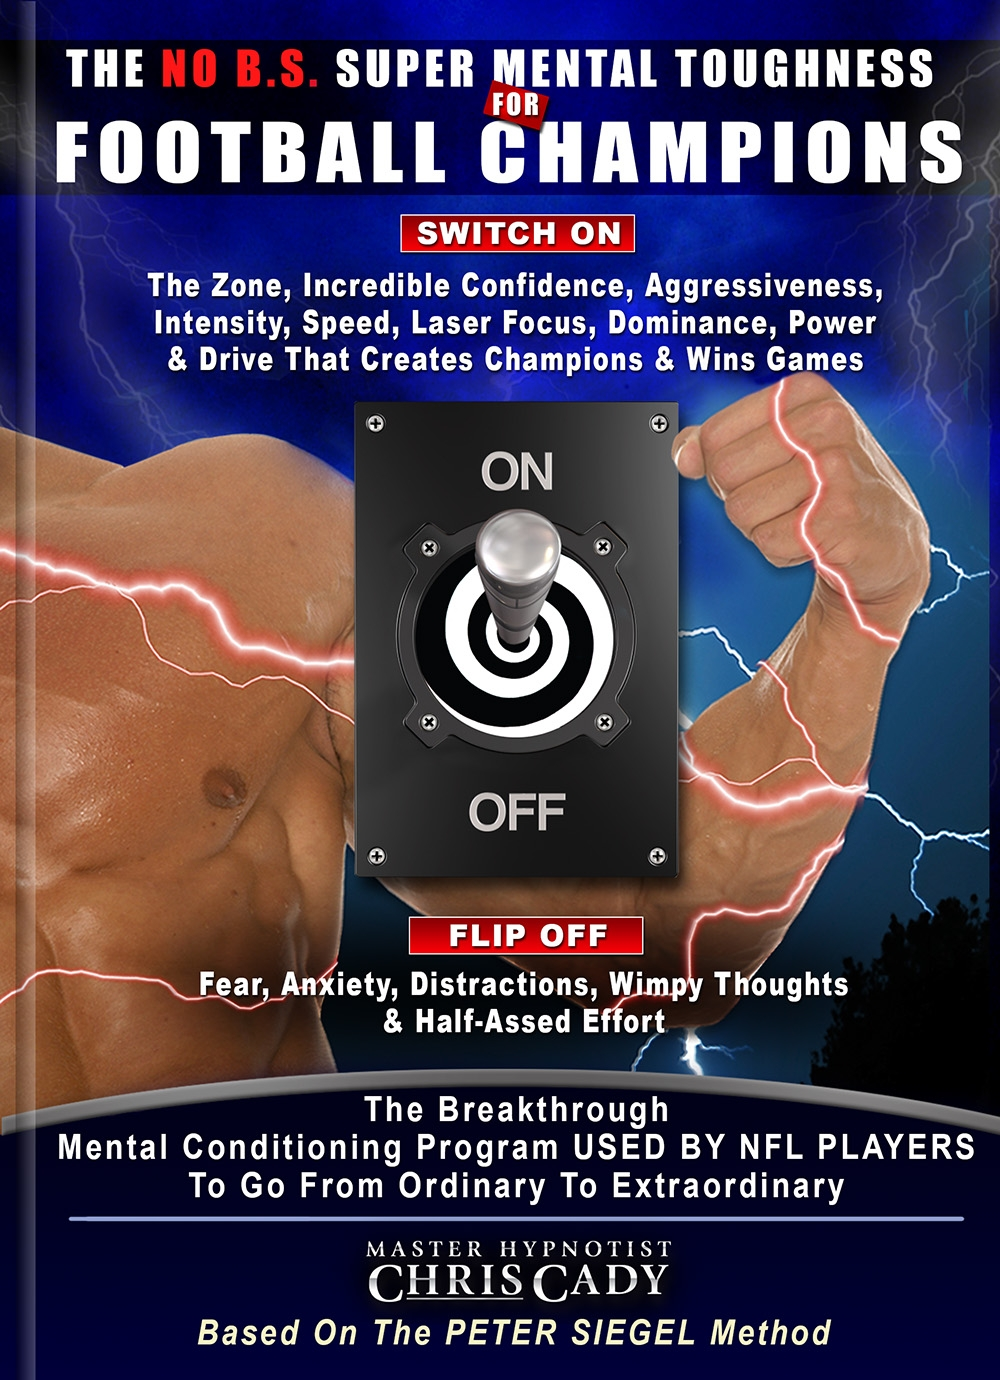 hypnosis mental toughness for football players hypnosis cd and book cover